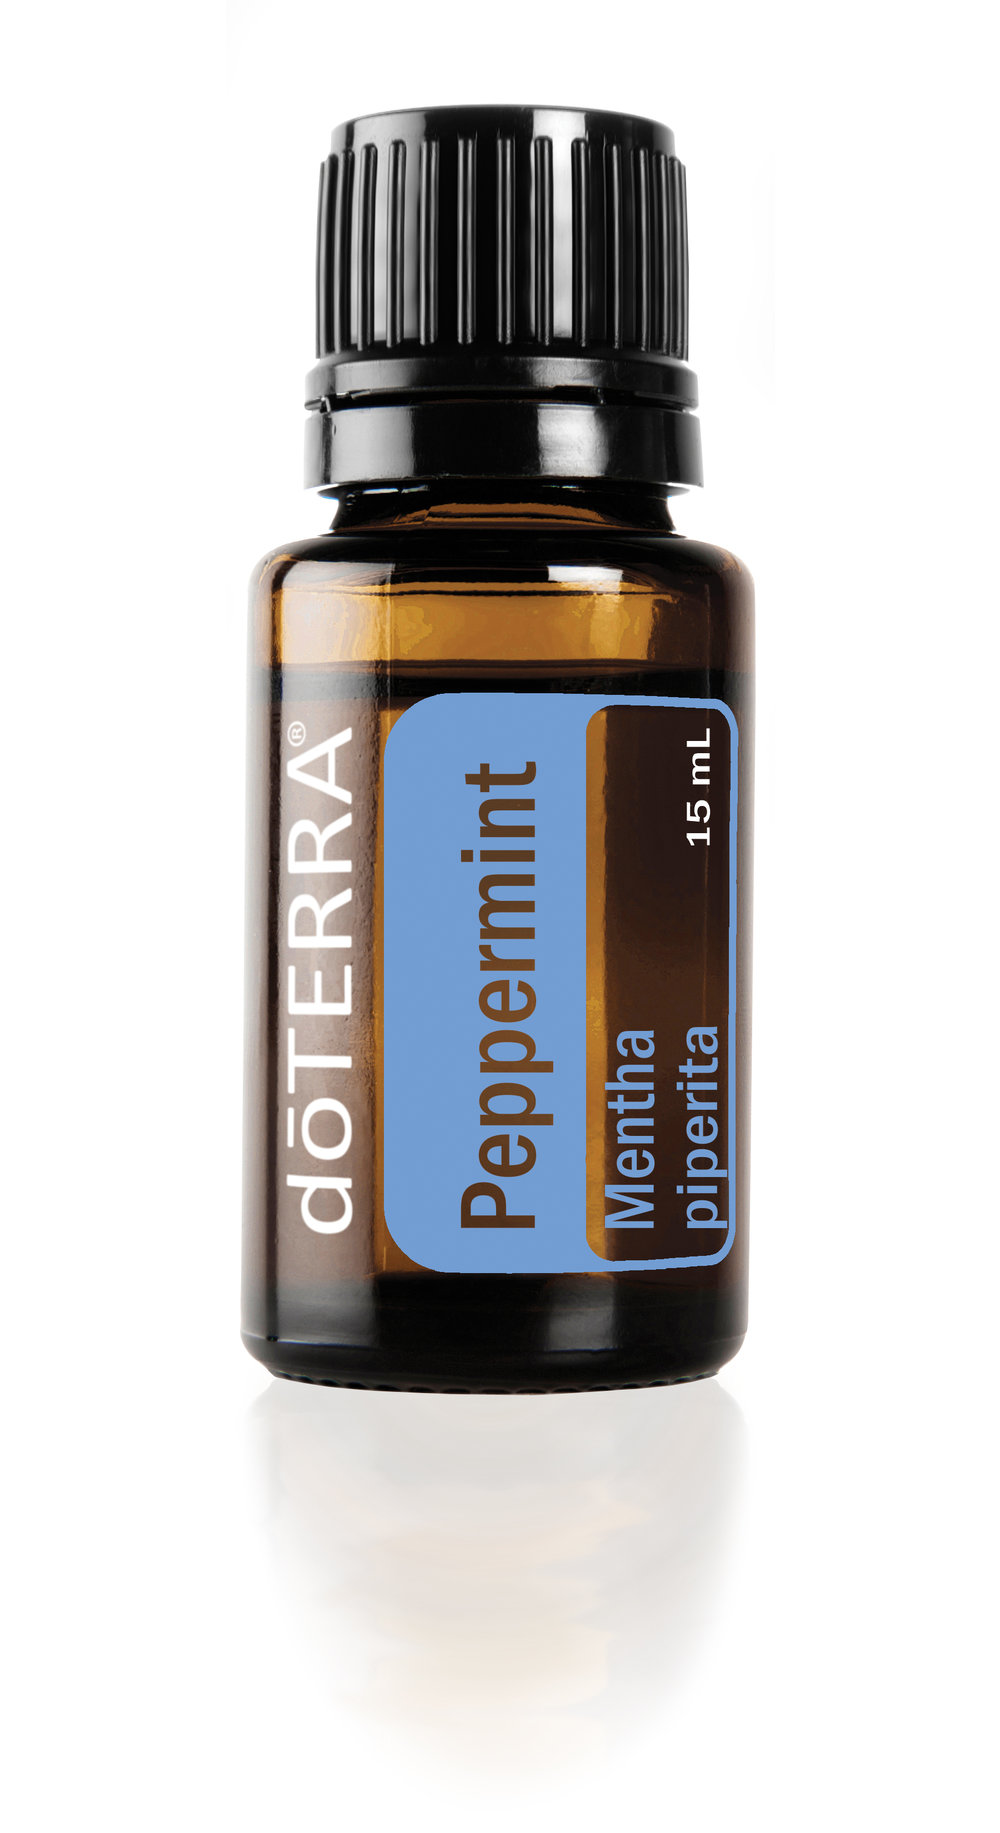 100% Certified Pure Therapeutic Grade Peppermint Essential Oil $27.33 Retail, $20.50 Wholesale (15mL=about 250 drops/doses) • Promotes healthy respiratory function and clear breathing* • Alleviates stomach upset* • Frequently used in toothpaste and chewing gum